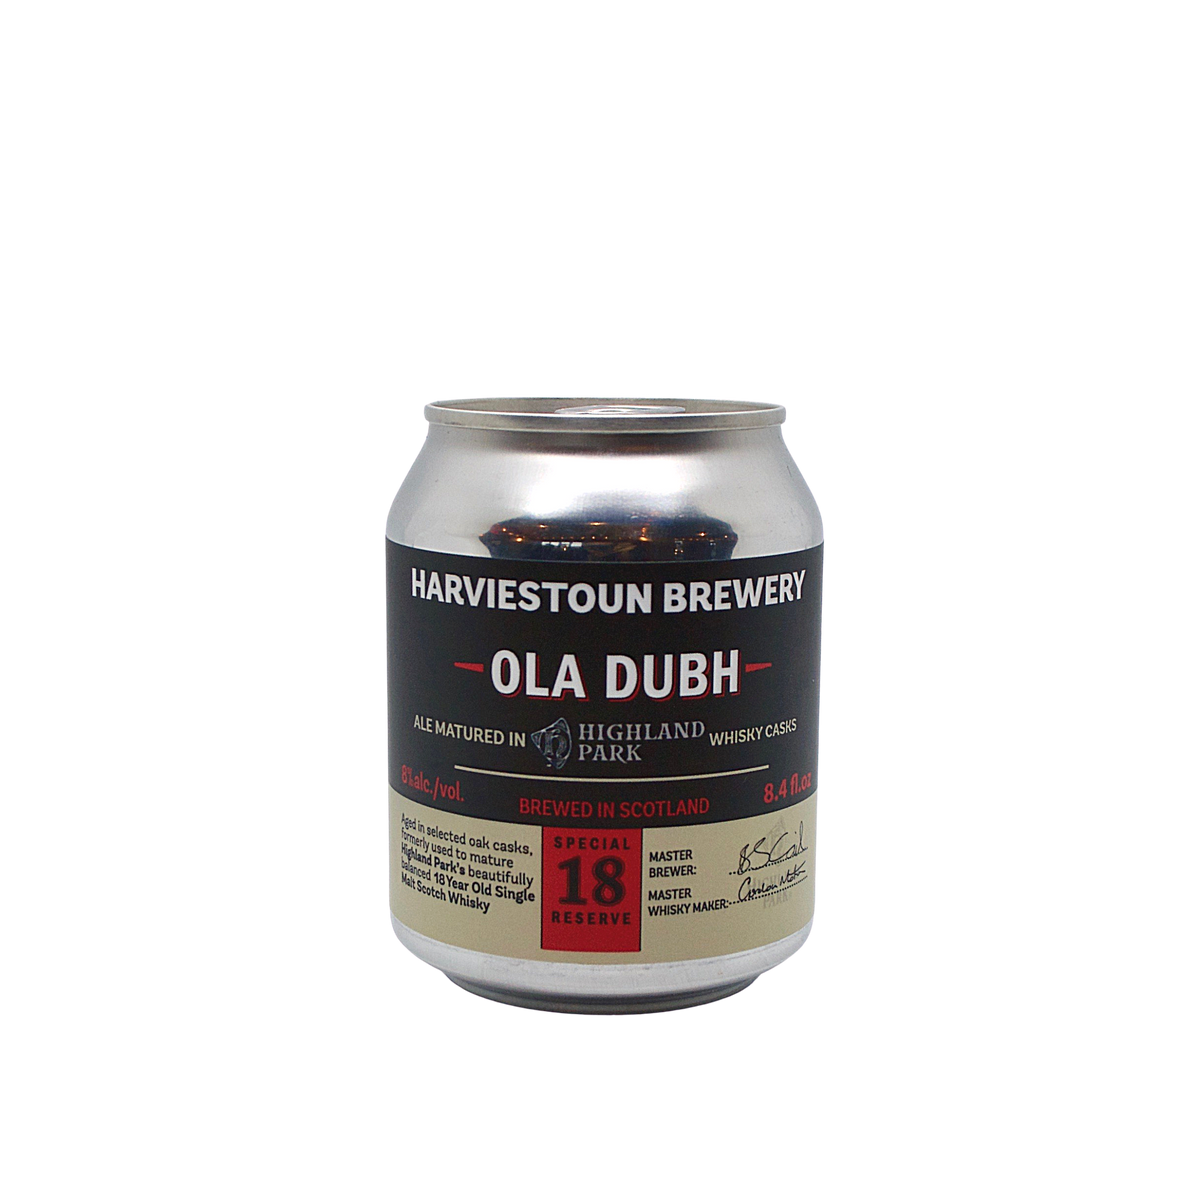 Harviestoun Ola Dubh 18 Year Old 8oz Can (Dark Ale Aged in Highland Park Whisky Casks)